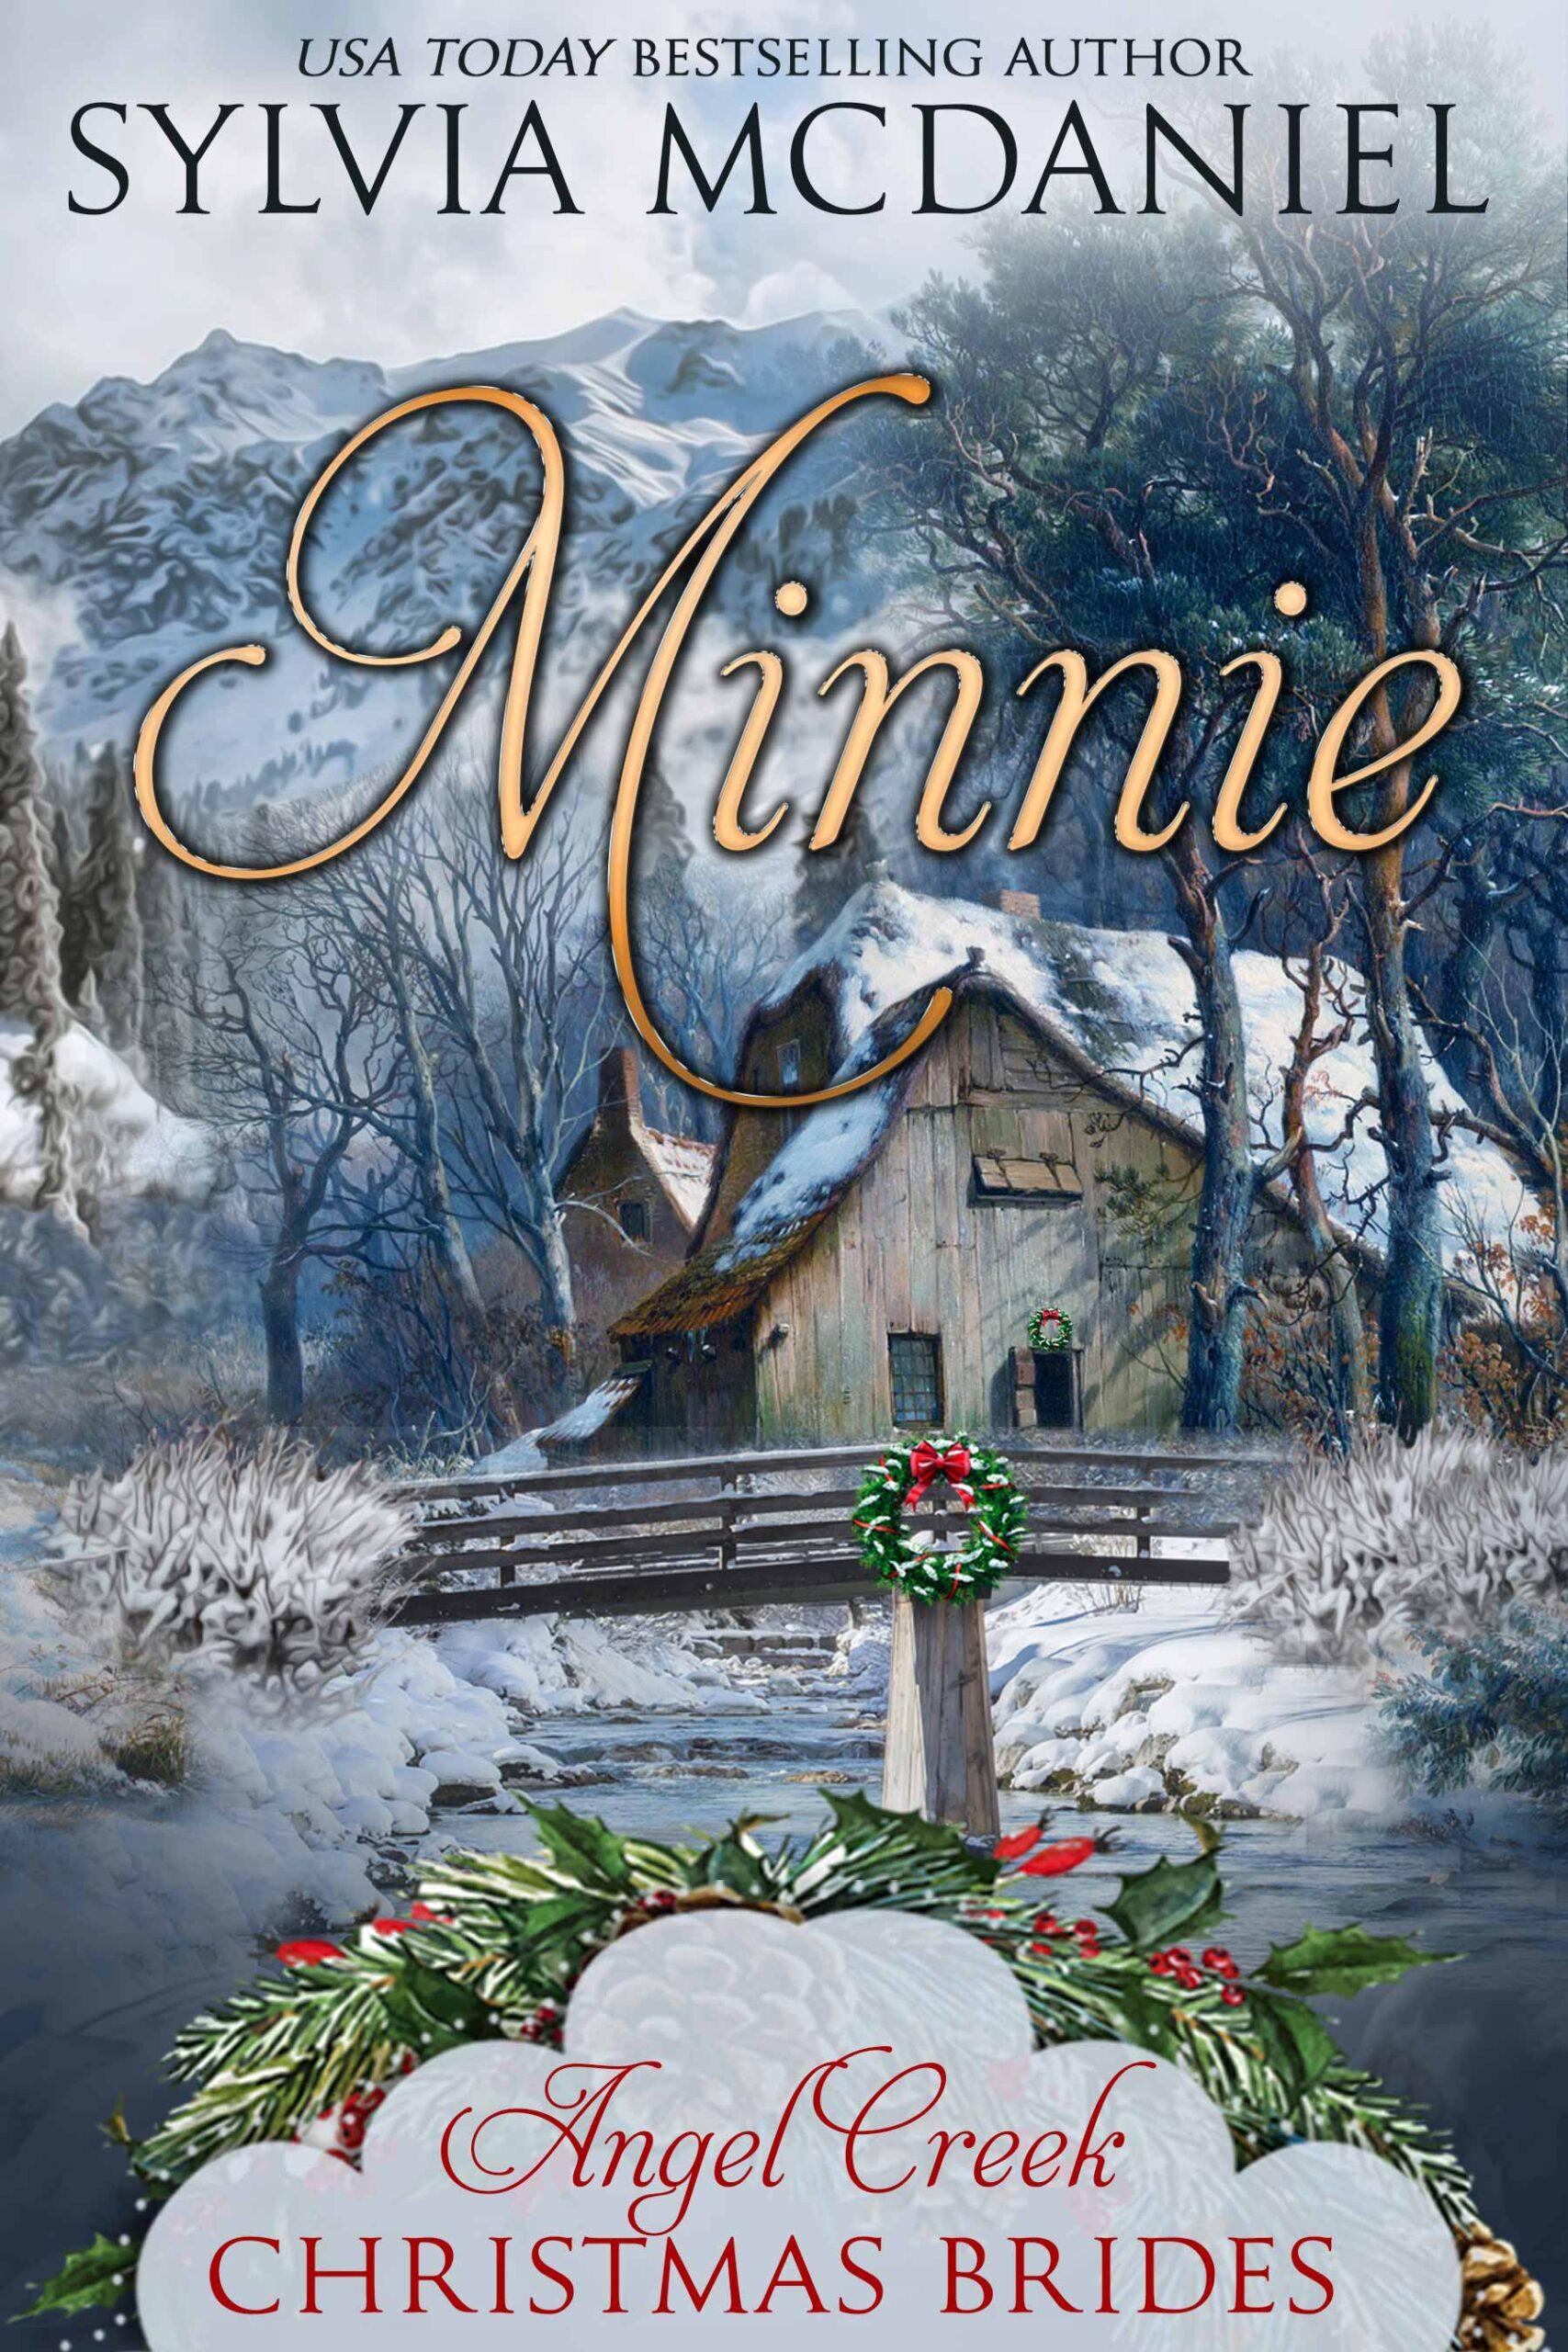 Cover of Minnie by Sylvia McDaniel. Winter scene with a house, a bridge with a wreath on it over a babbling brook.